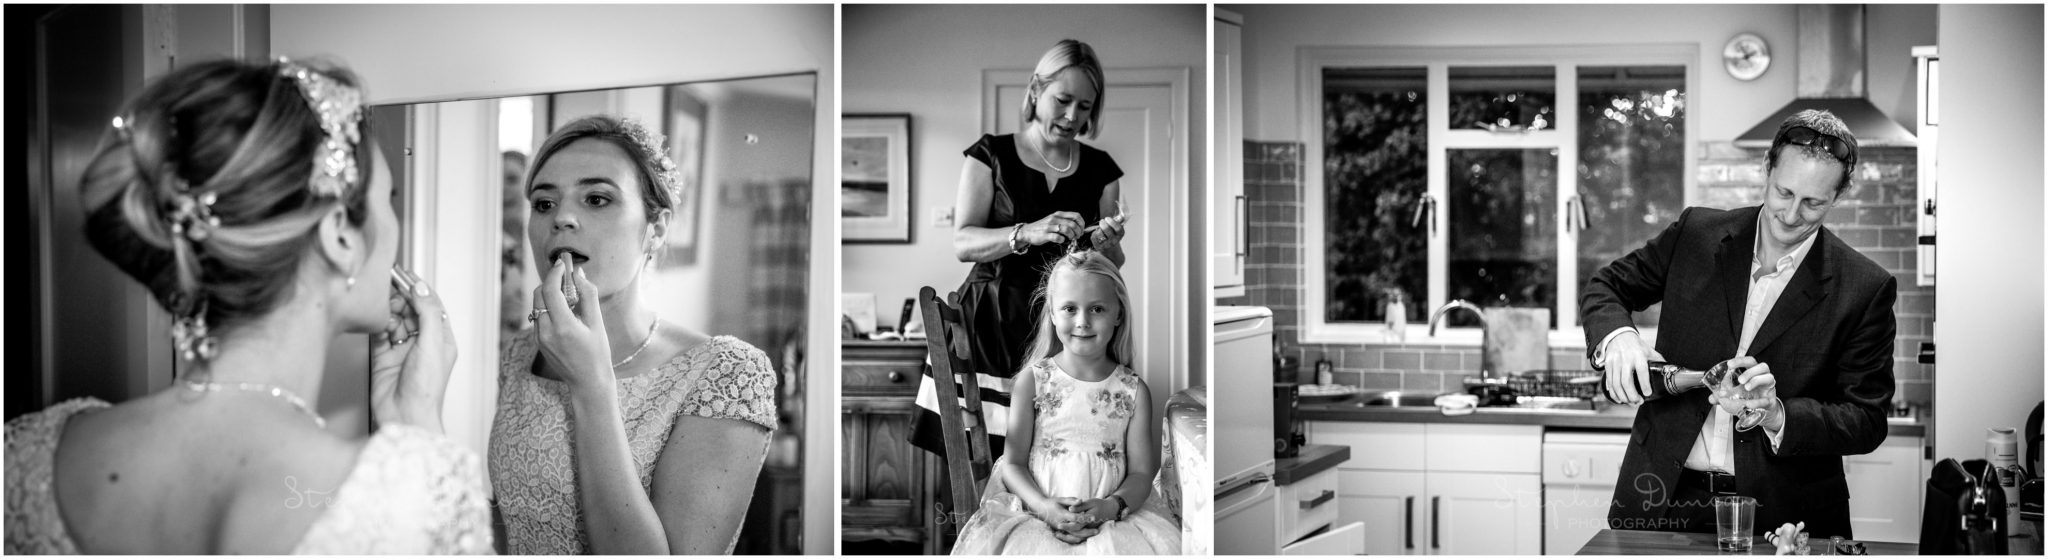 Lymington wedding photography black and white photos bridal prep